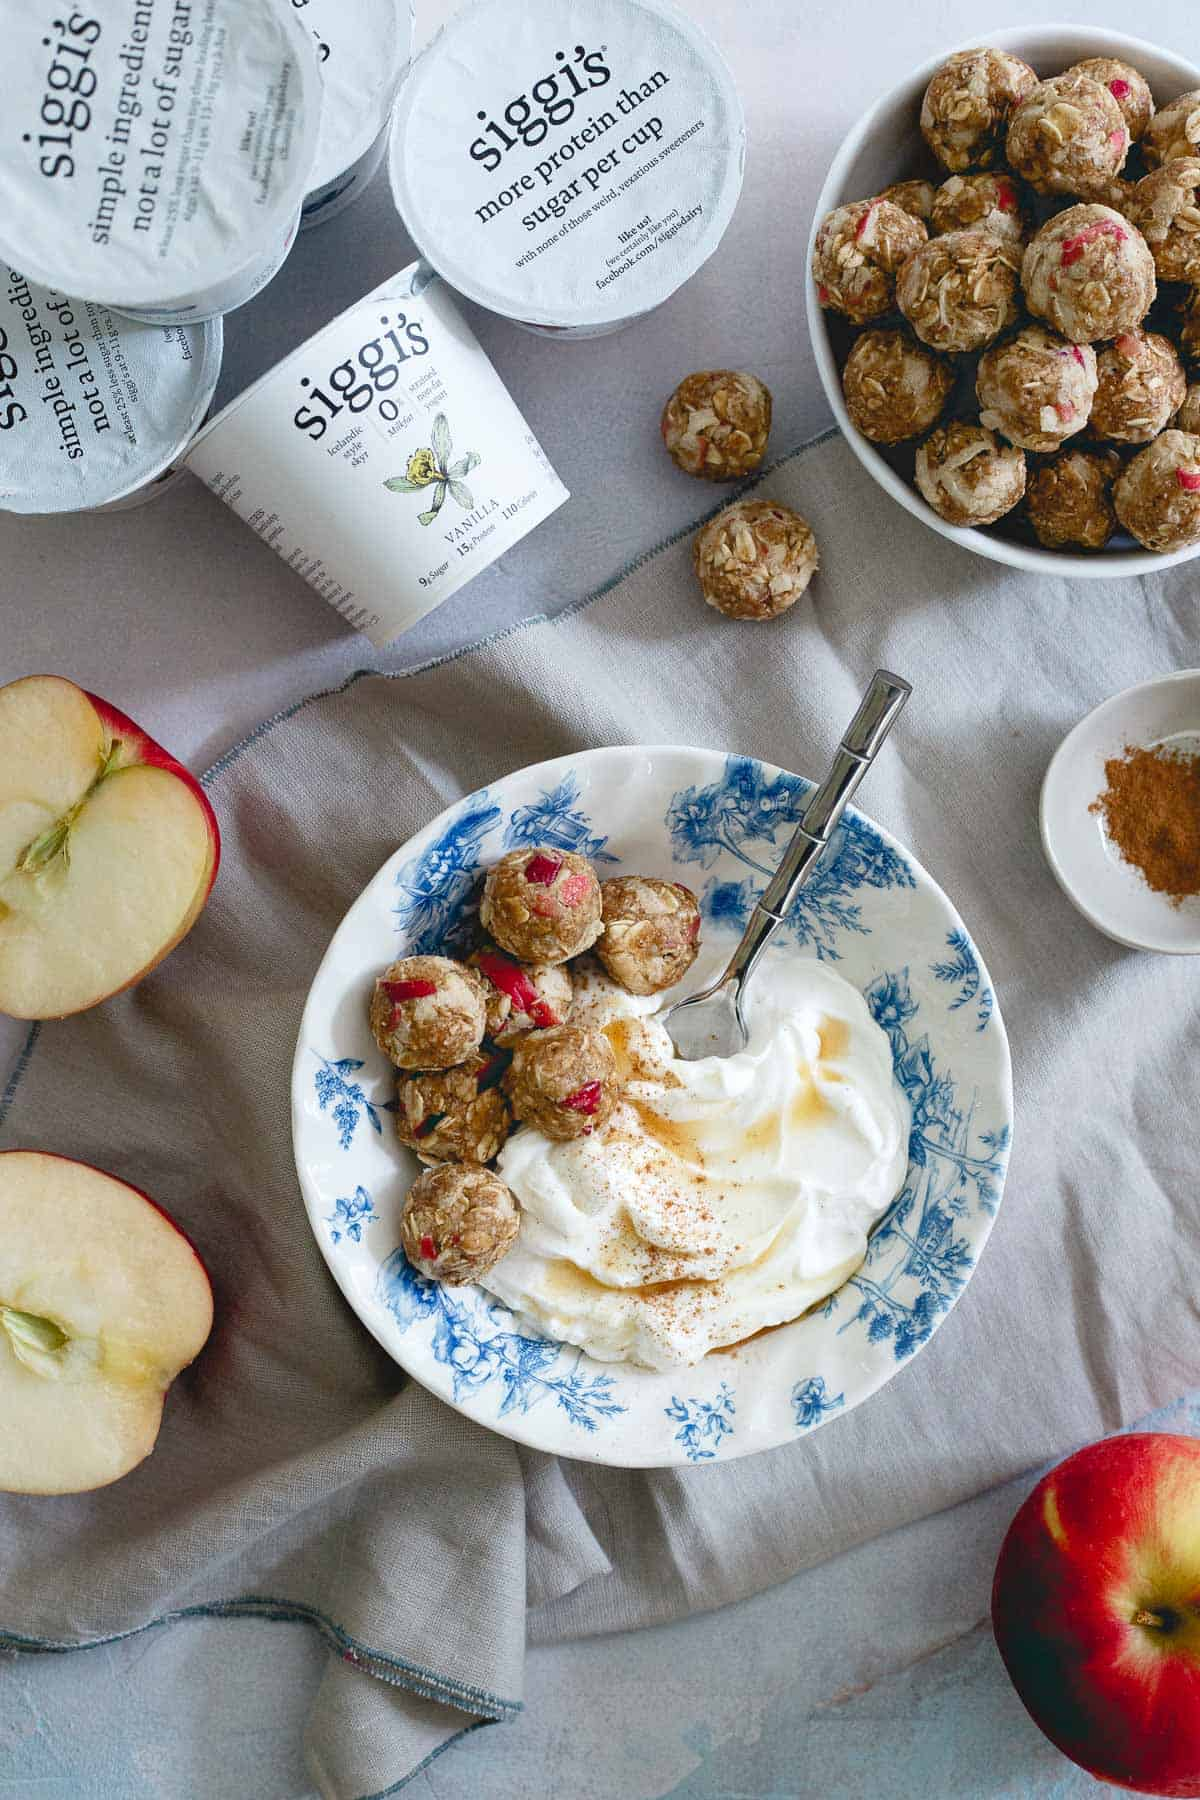 These apple cinnamon cookie bites are made with oats, cashew butter and real pieces of fresh apples. A great fall snack and delicious with a bowl of yogurt!